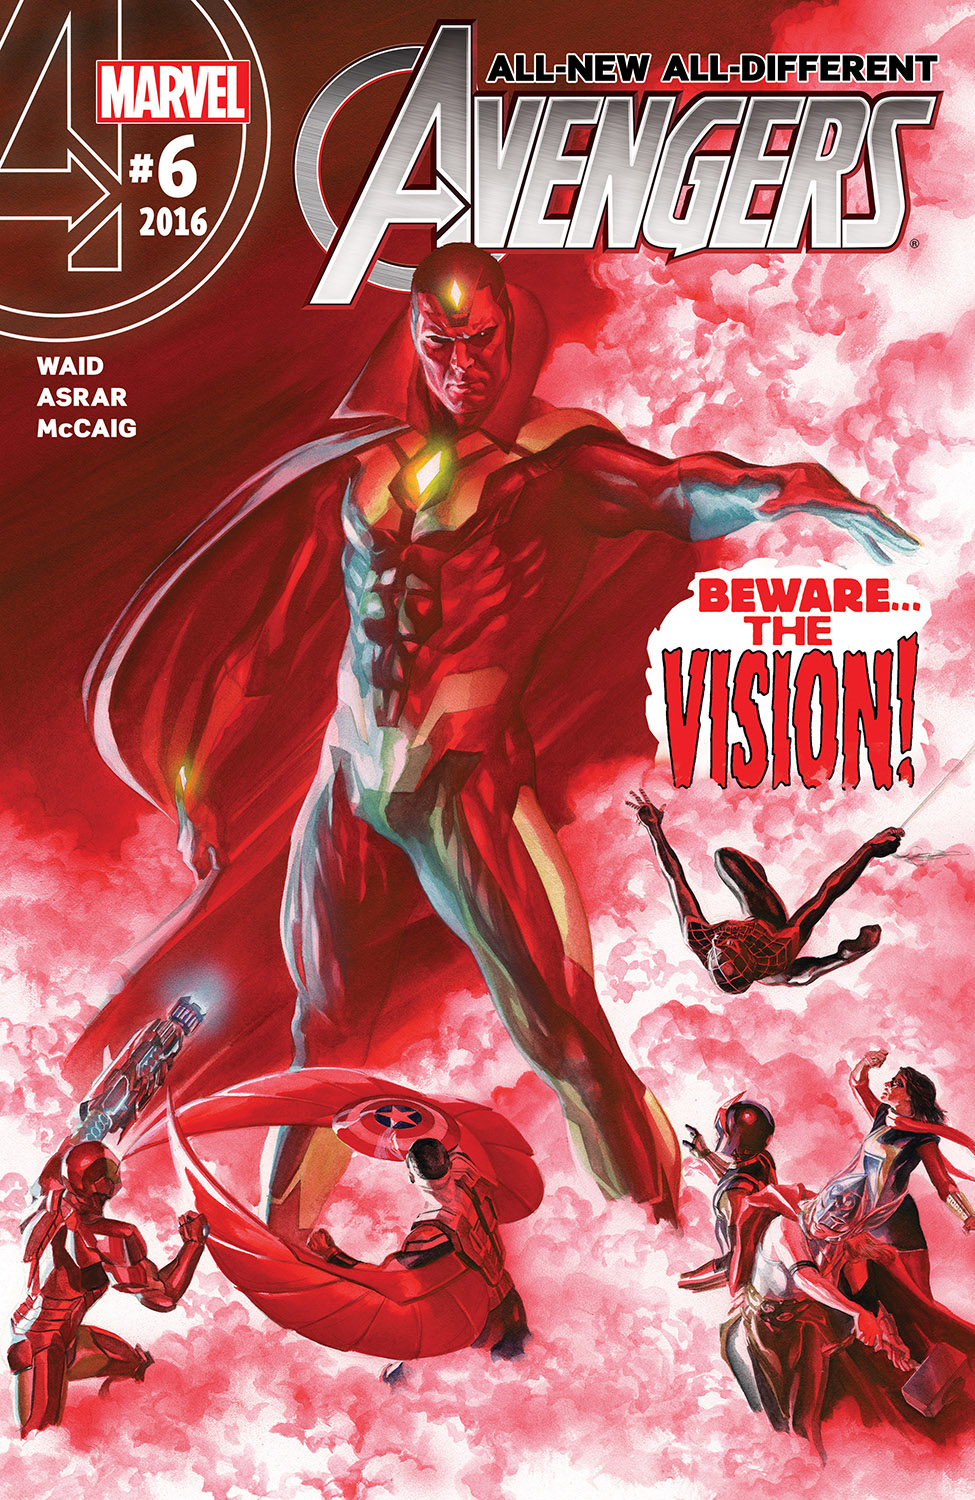 All-New, All-Different Avengers (2015) #6